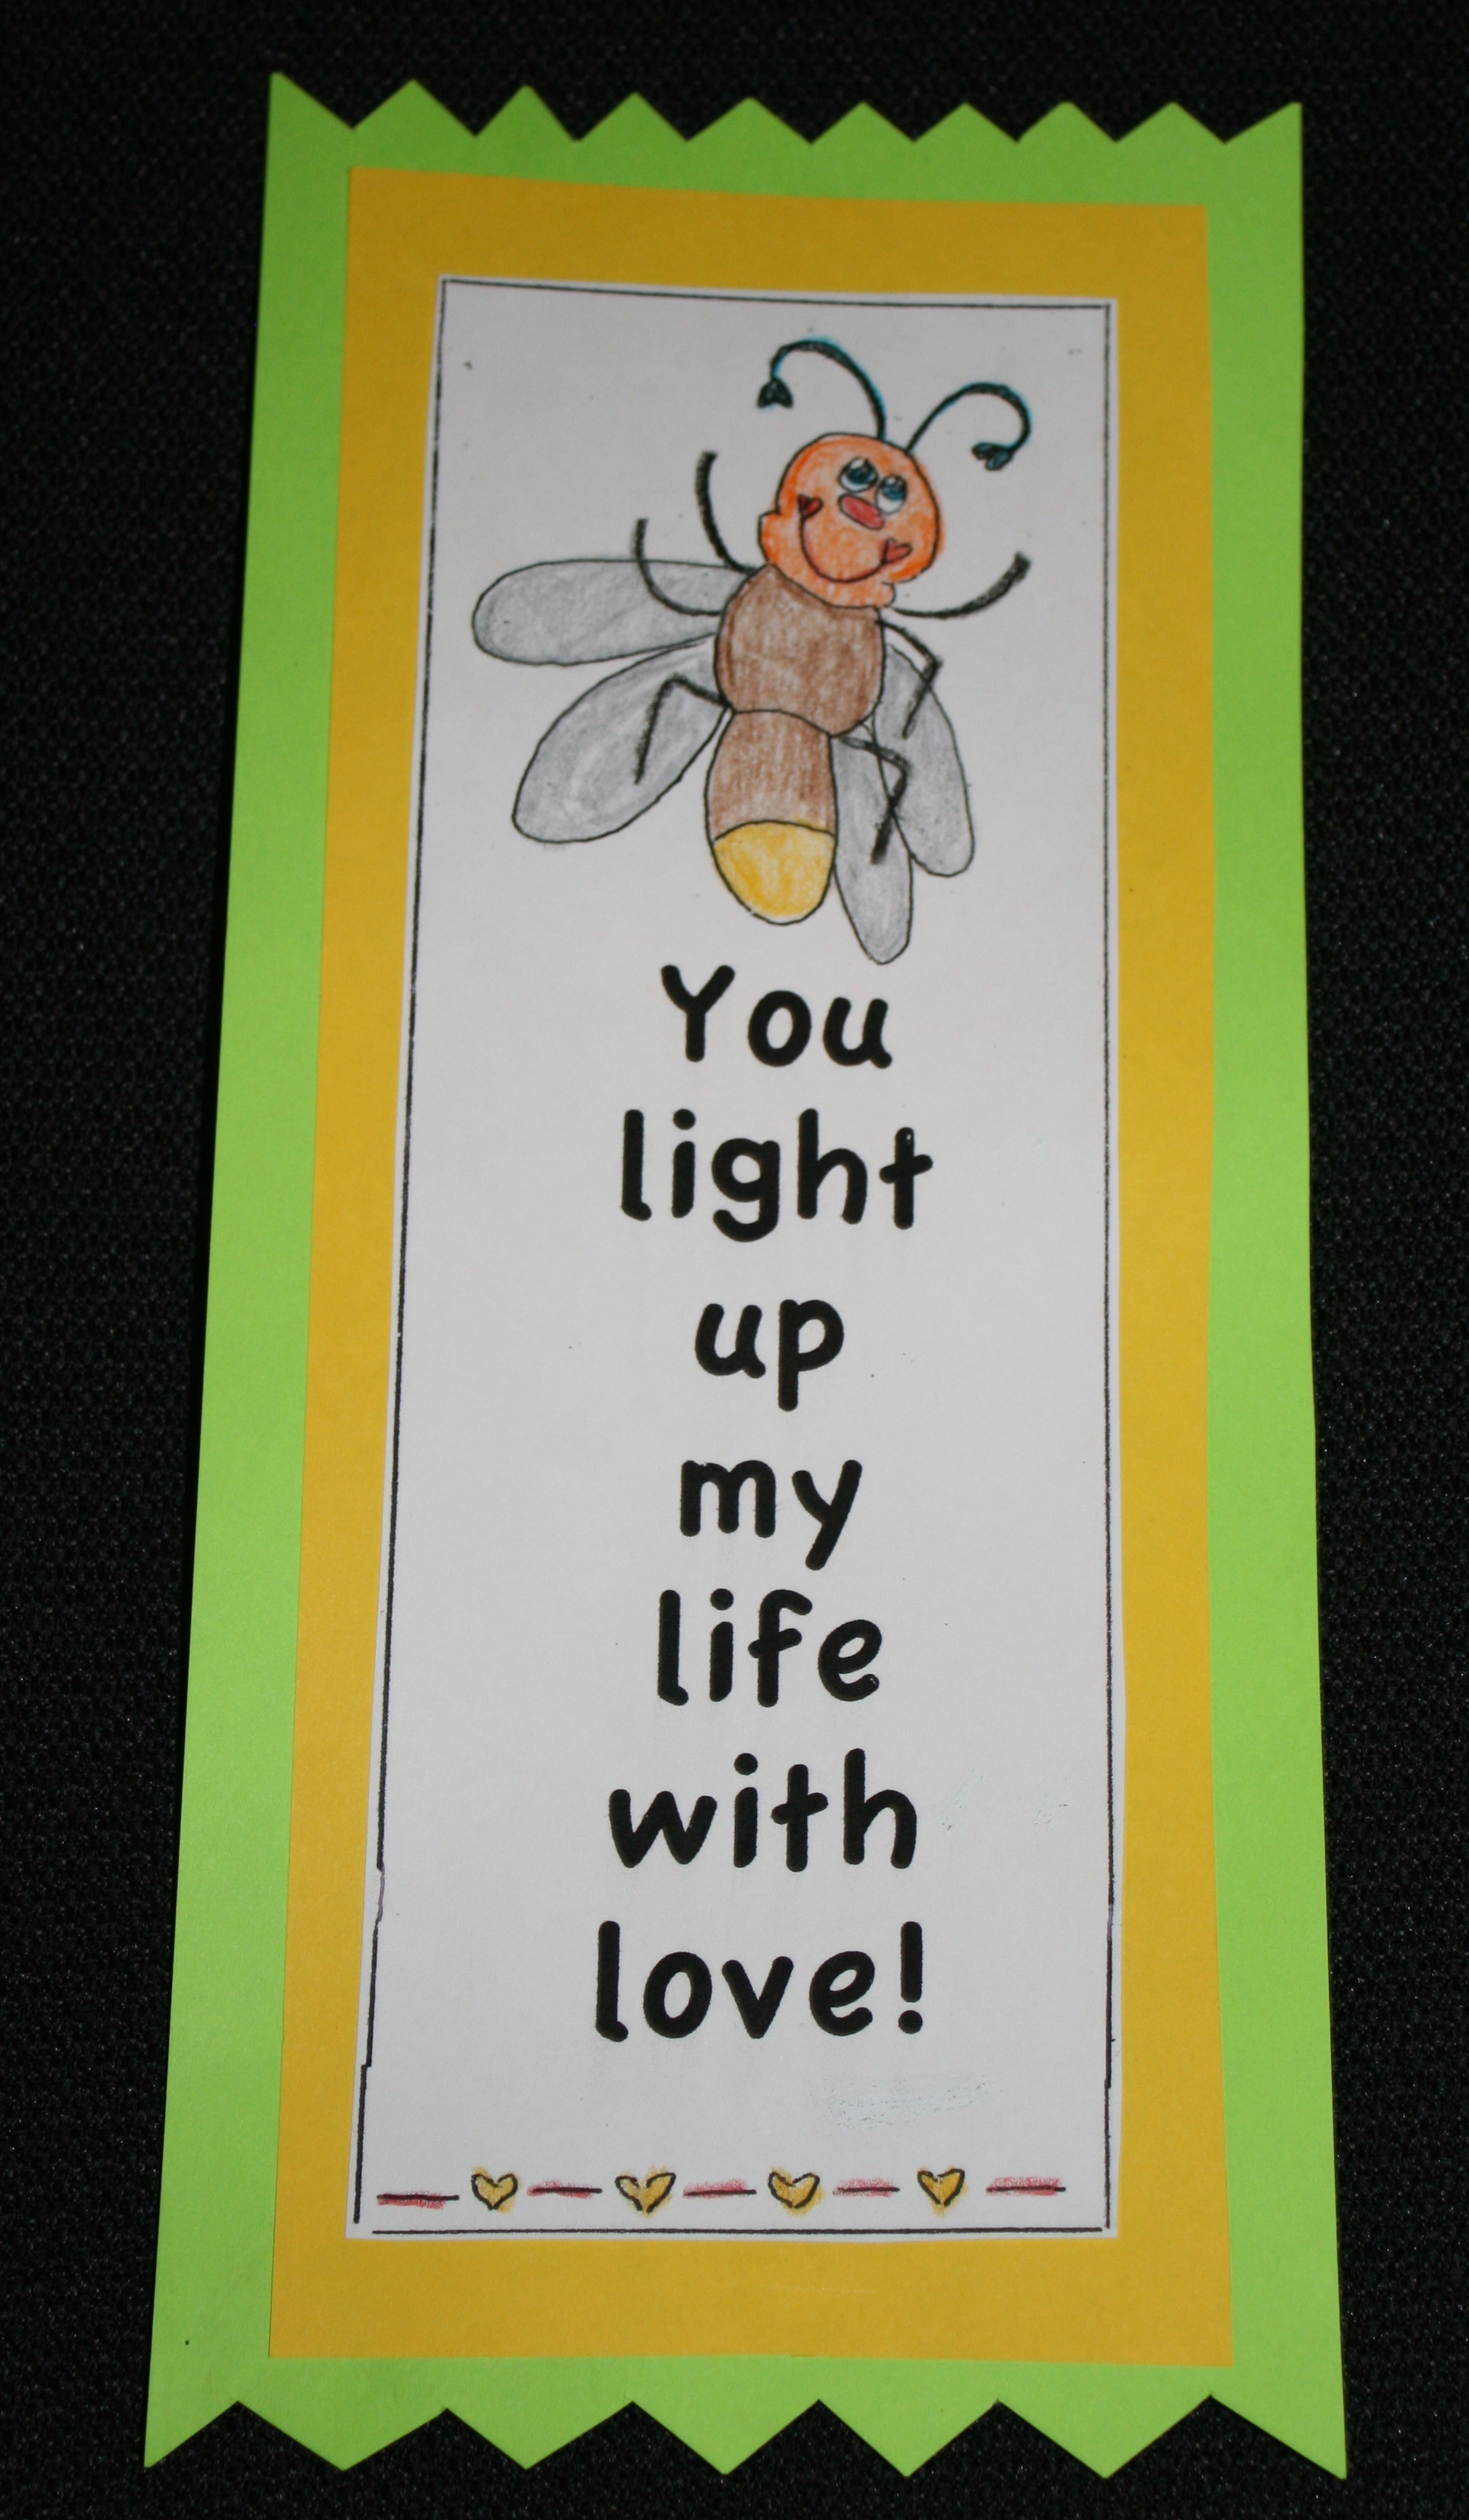 firefly bookmark, firefly art projects, firefly activities, lifecycle of a firefly, firefly science, firefly activities, firefly lessons, firefly bulletin board, life cycle of a firefly, science ideas for early elementary, insect ideas, science centers, firefly booklet, firefly crafts, firefly art project, firefly centers, firefly activities,